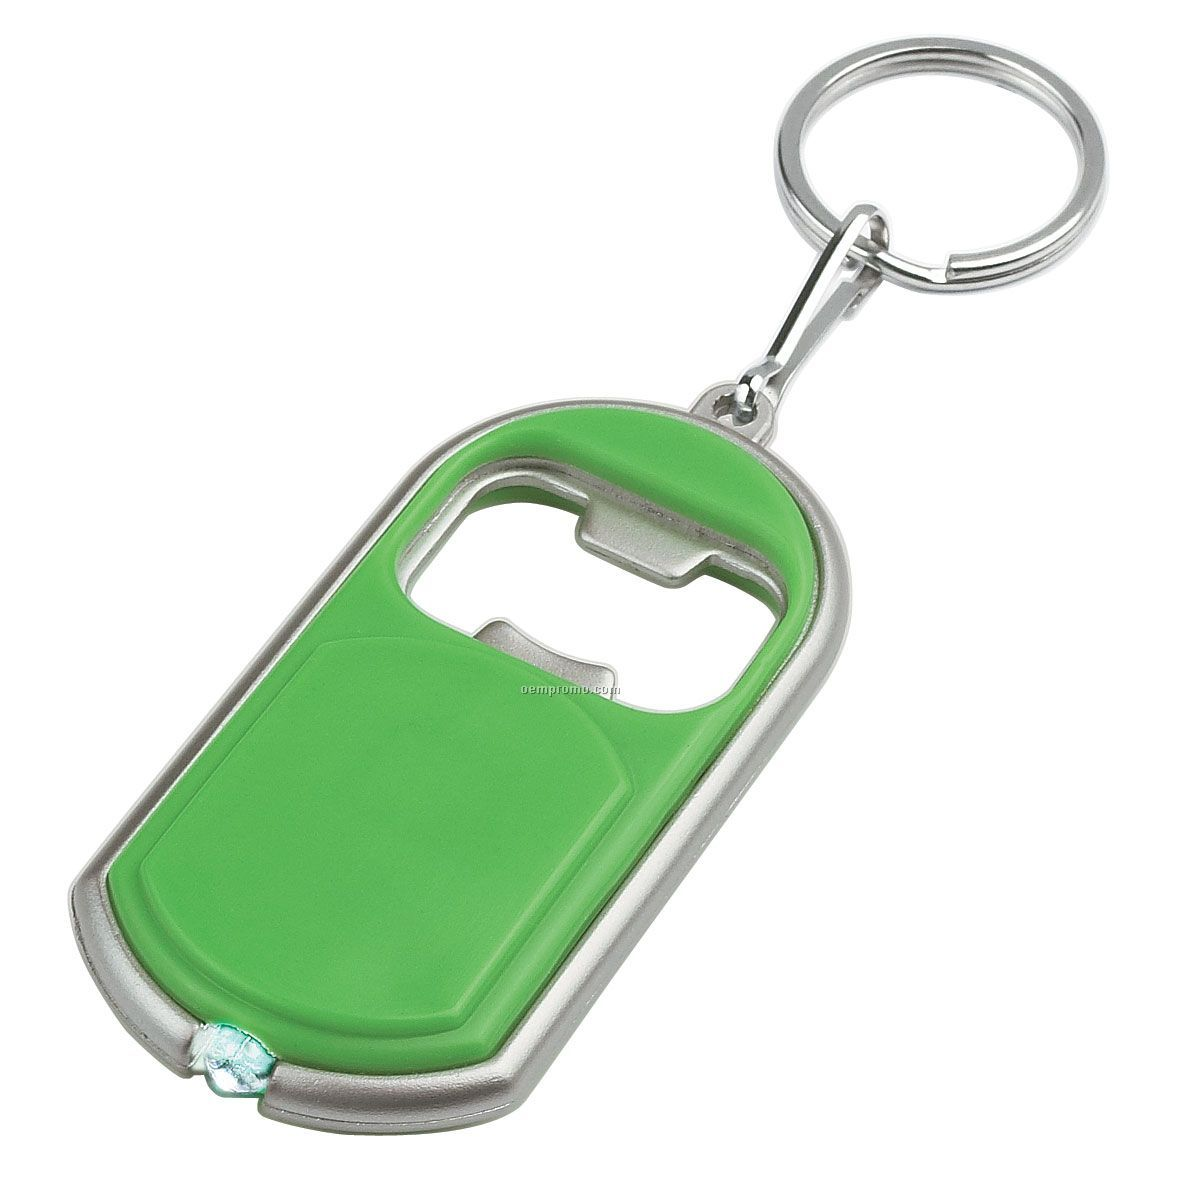 light up bottle opener w keychain green china wholesale light up bottle opener w keychain. Black Bedroom Furniture Sets. Home Design Ideas